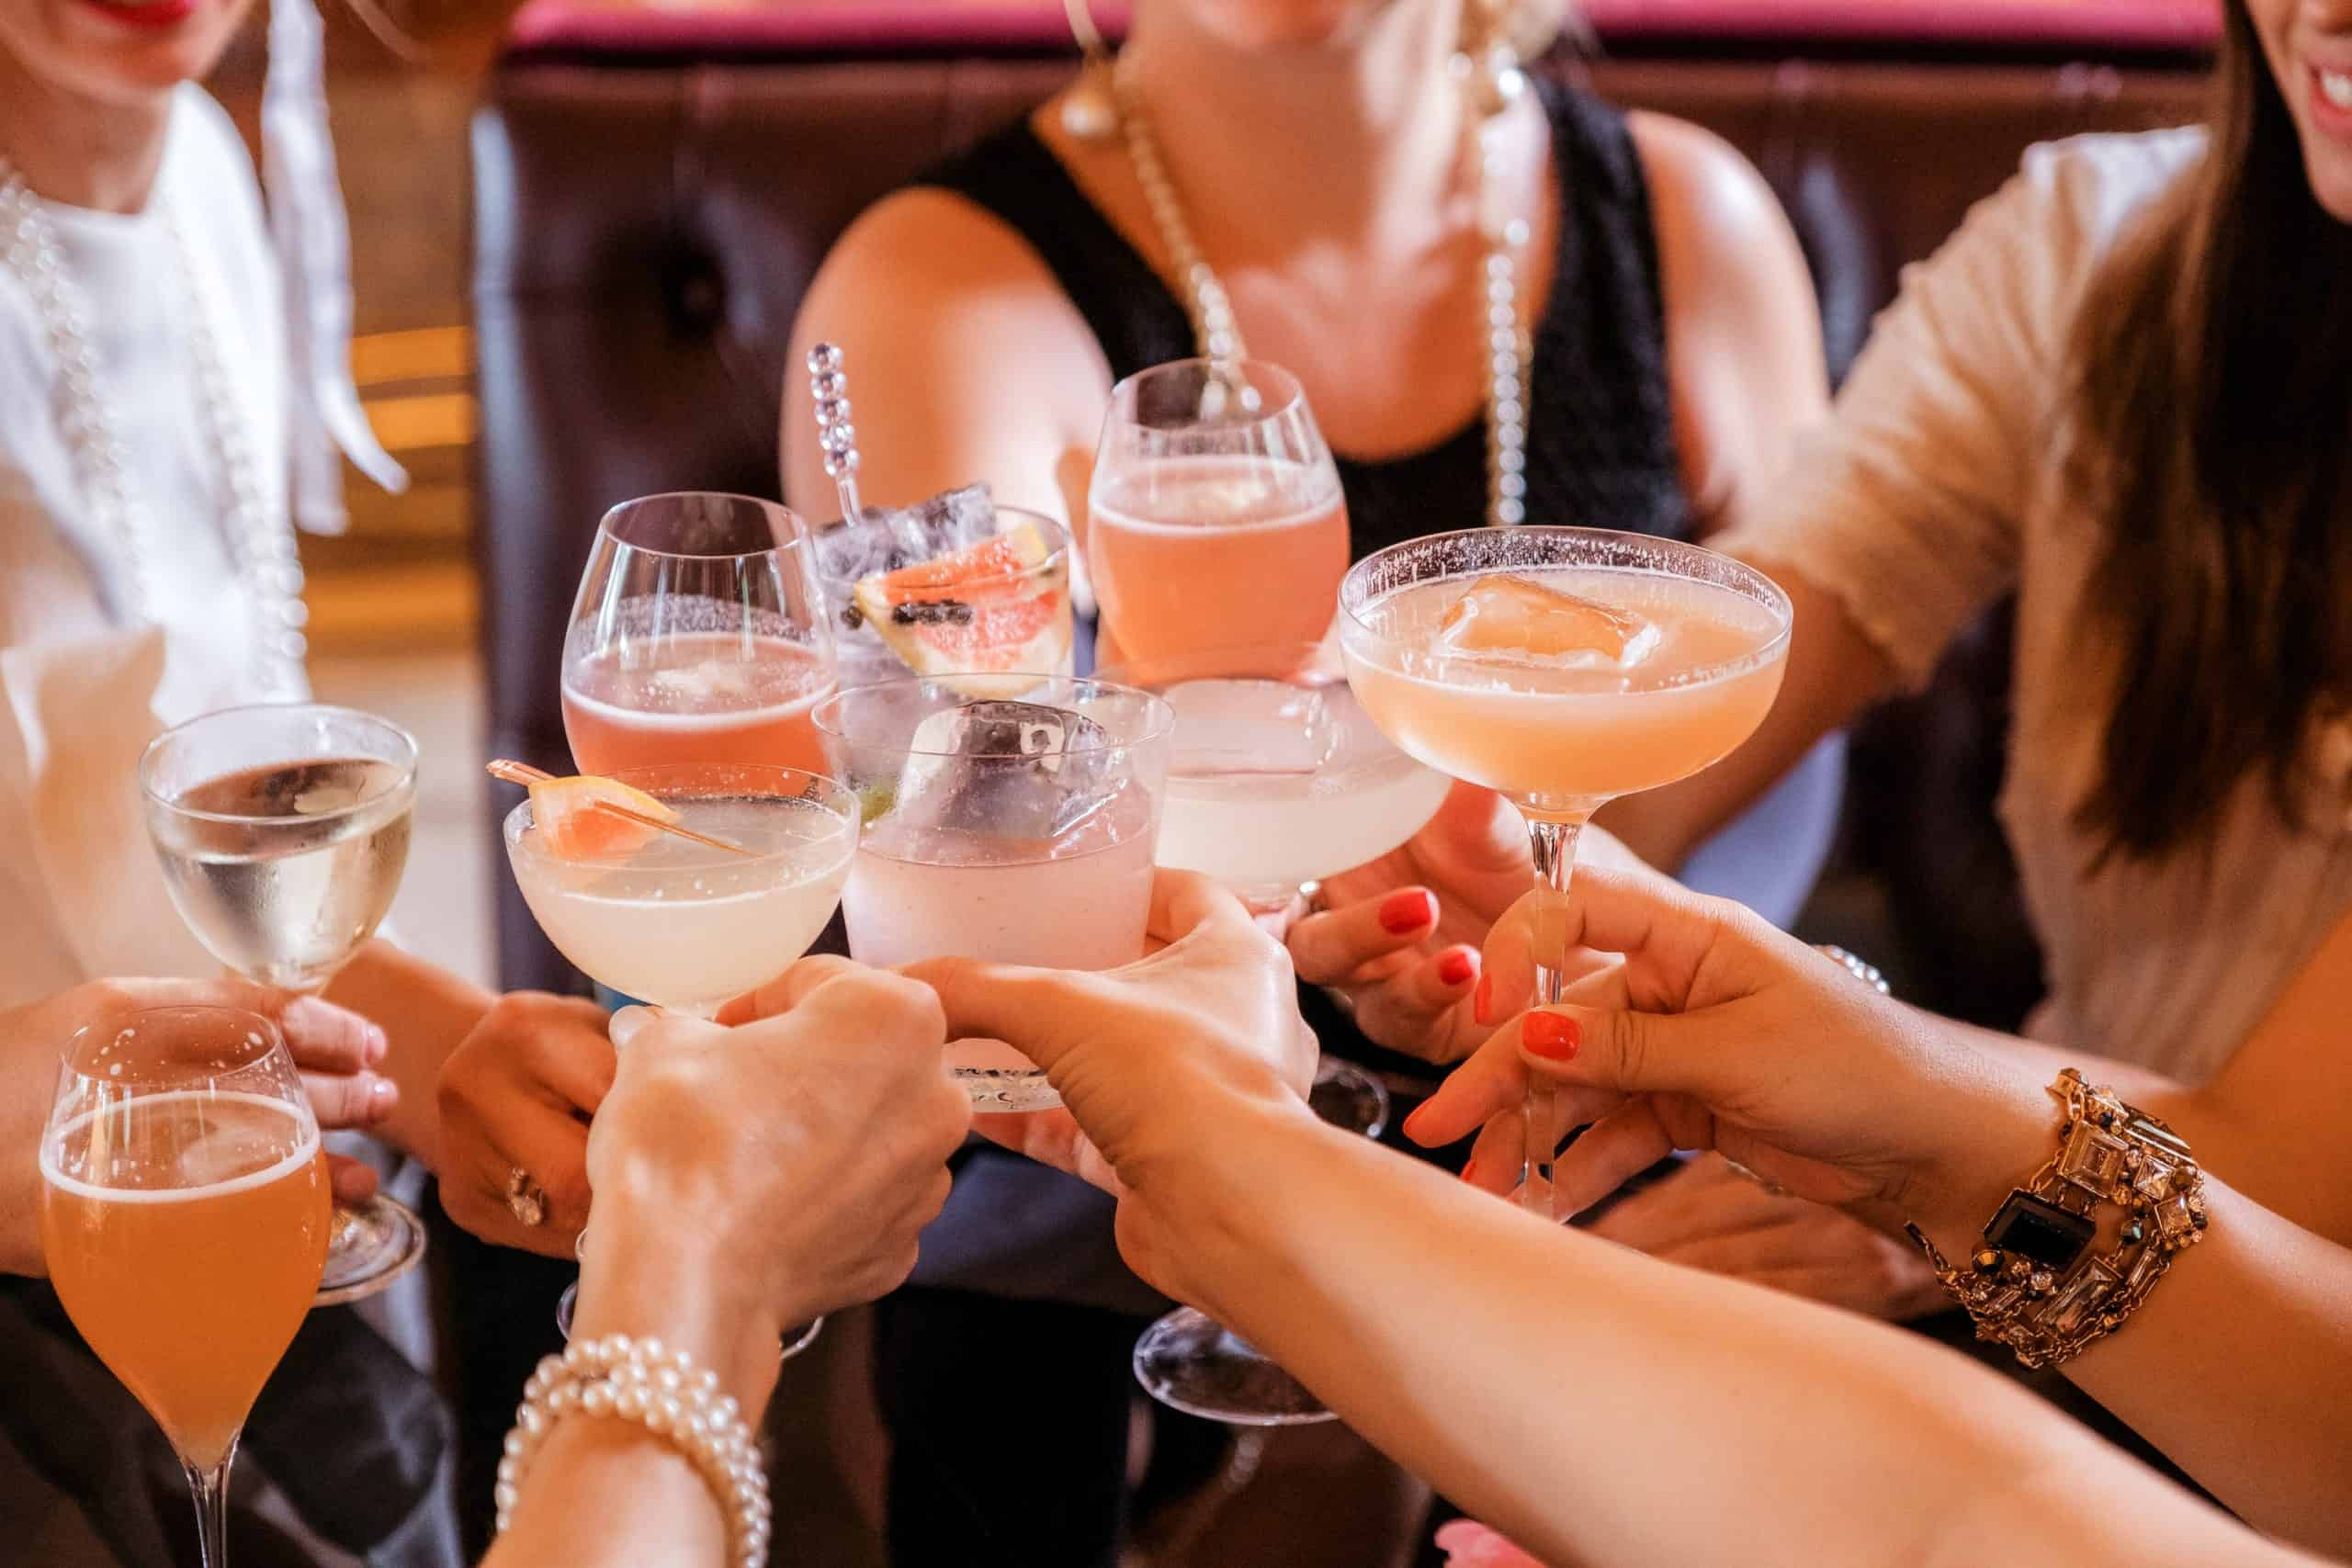 A group doing cheers with cocktails